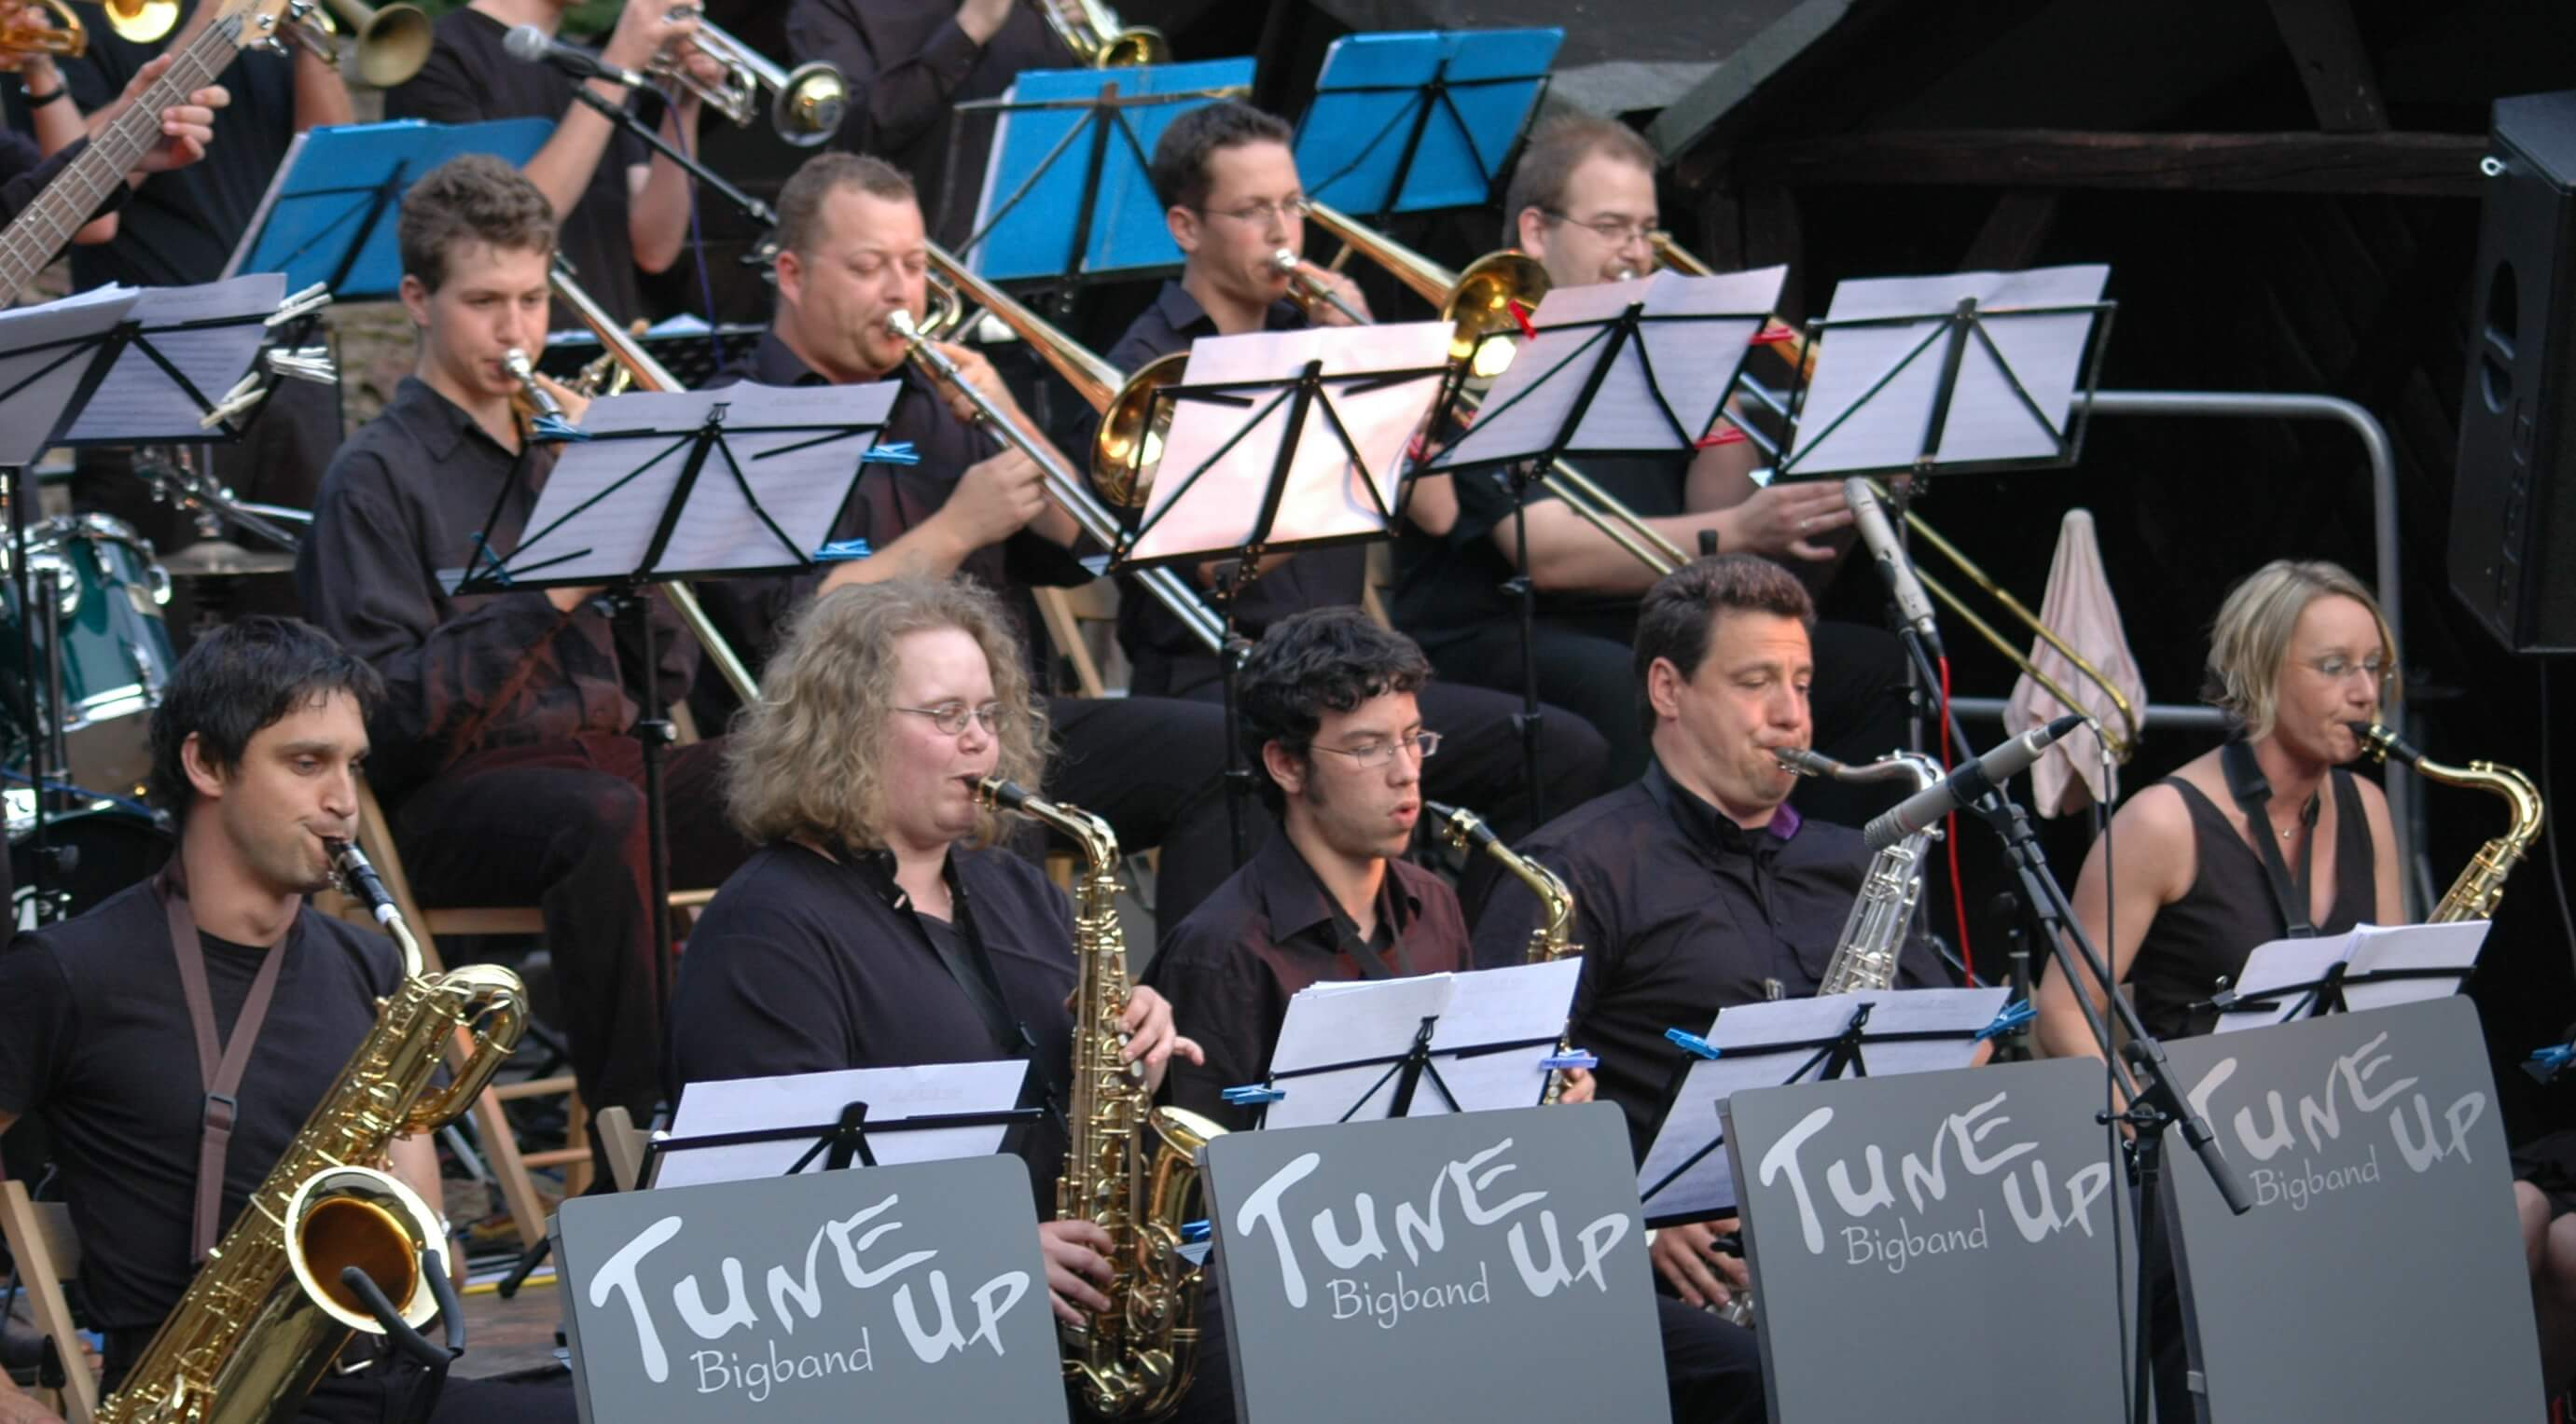 »Tune Up Bigband«